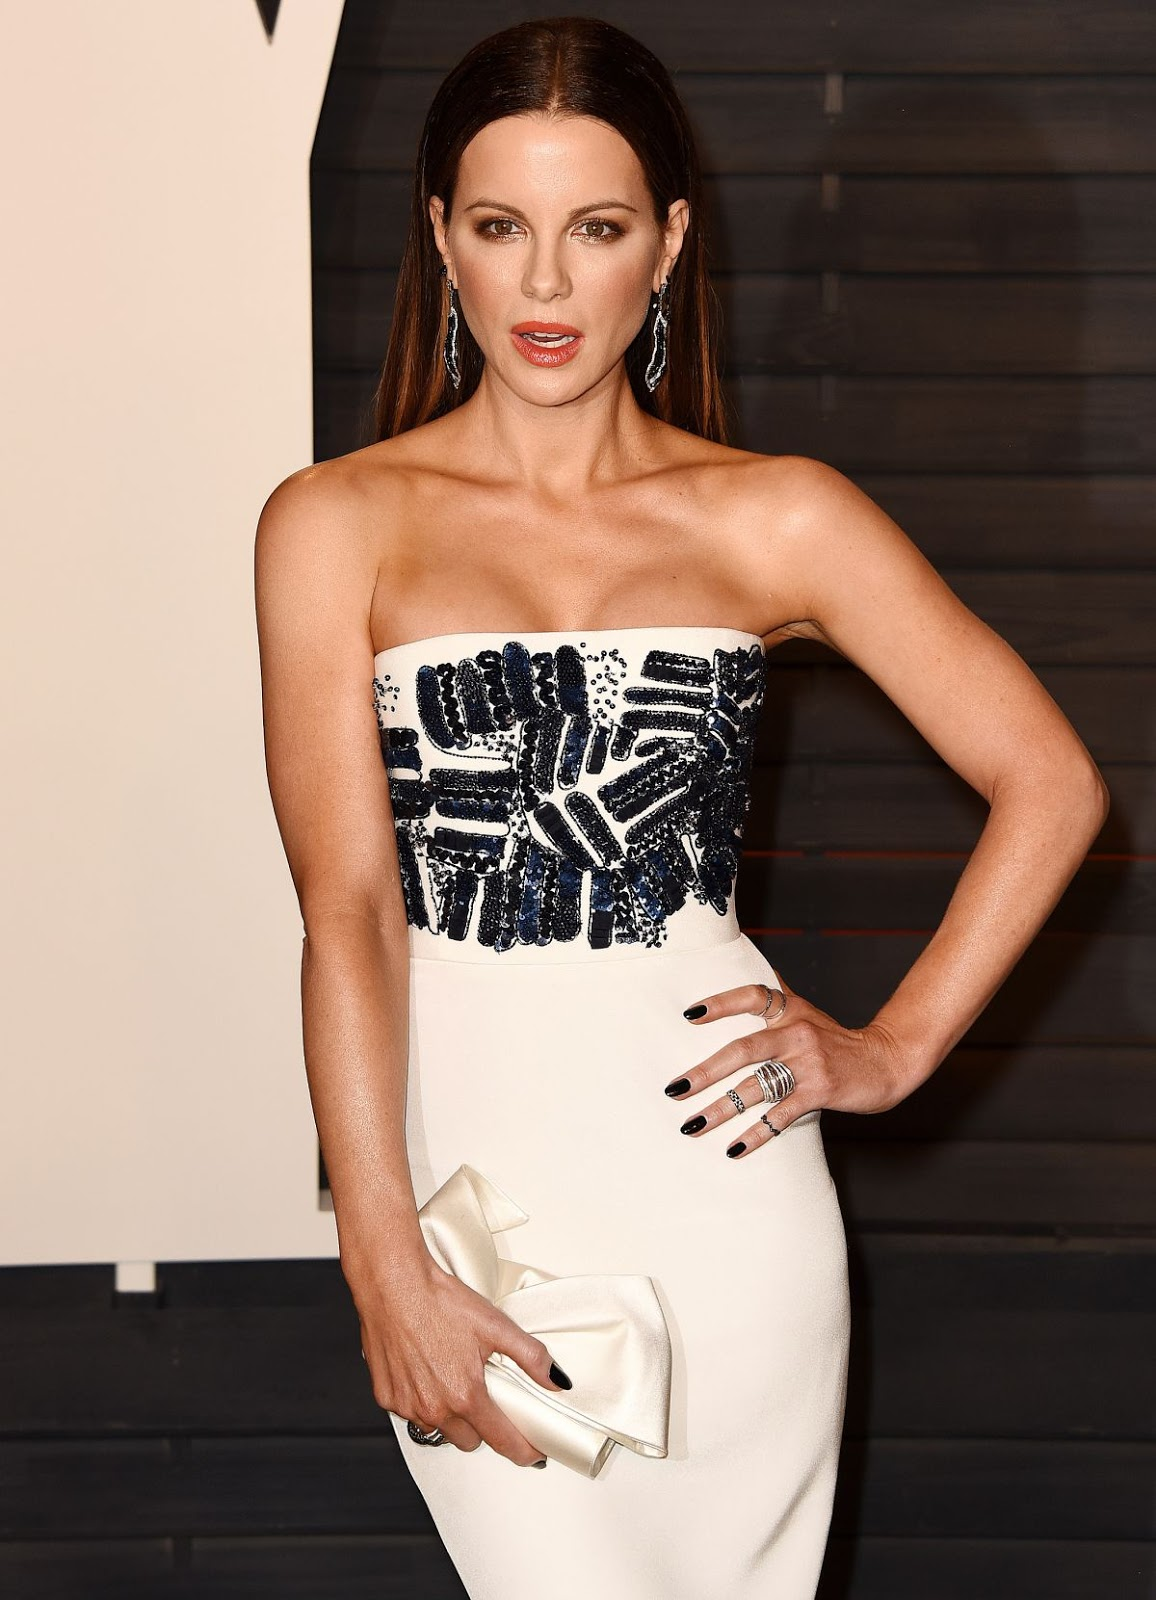 Underworld Next Generation actress Kate Beckinsale at Vanity Fair Oscar 2016 Party in Beverly Hills